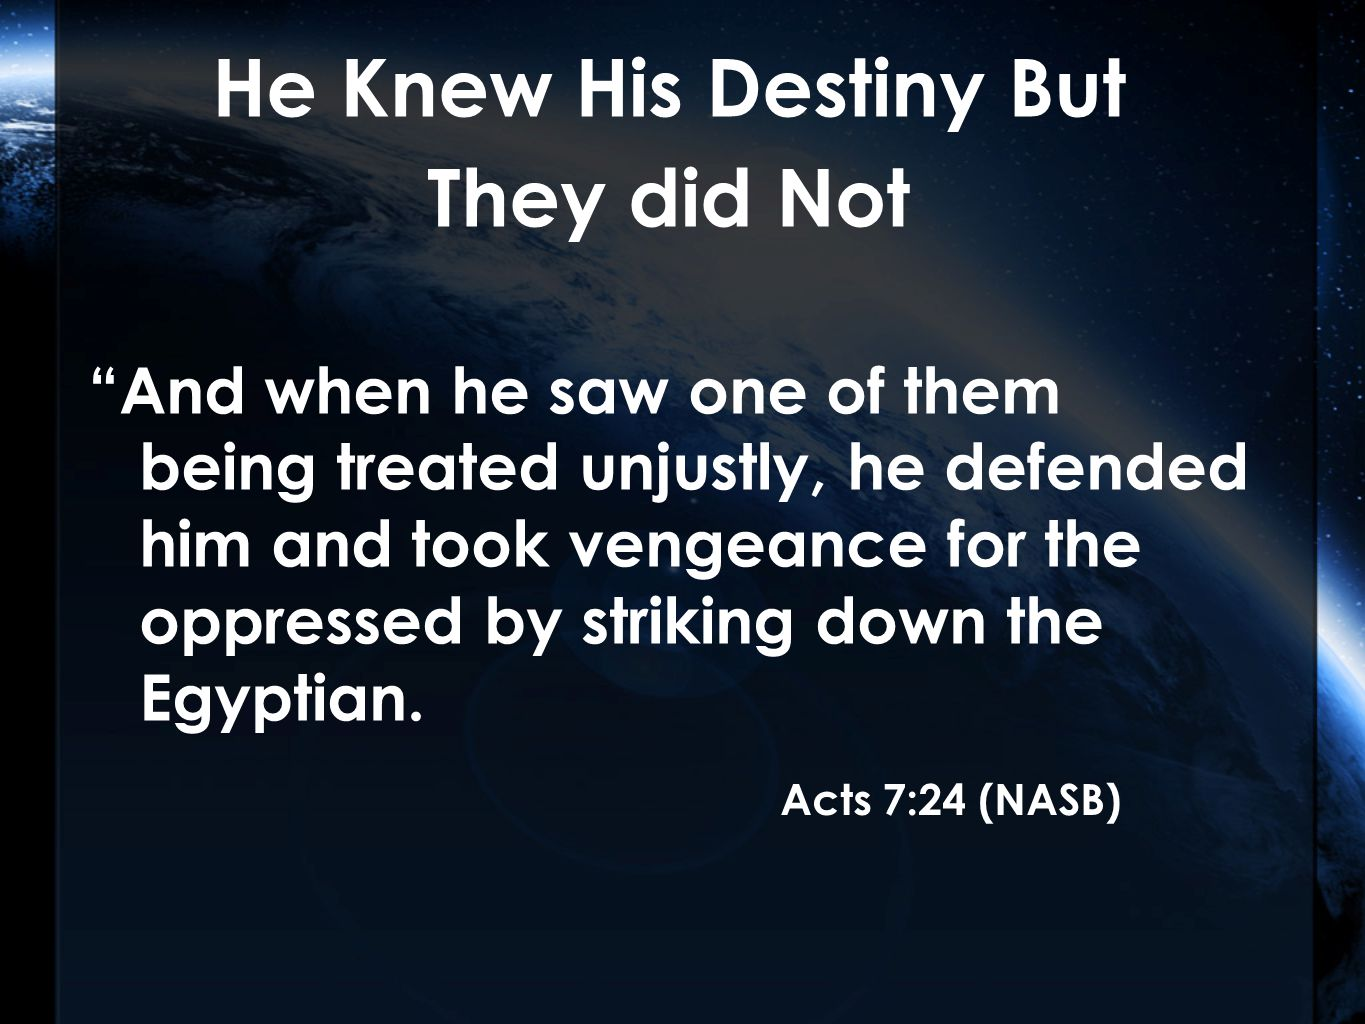 He Knew His Destiny But They did Not And when he saw one of them being treated unjustly, he defended him and took vengeance for the oppressed by striking down the Egyptian.